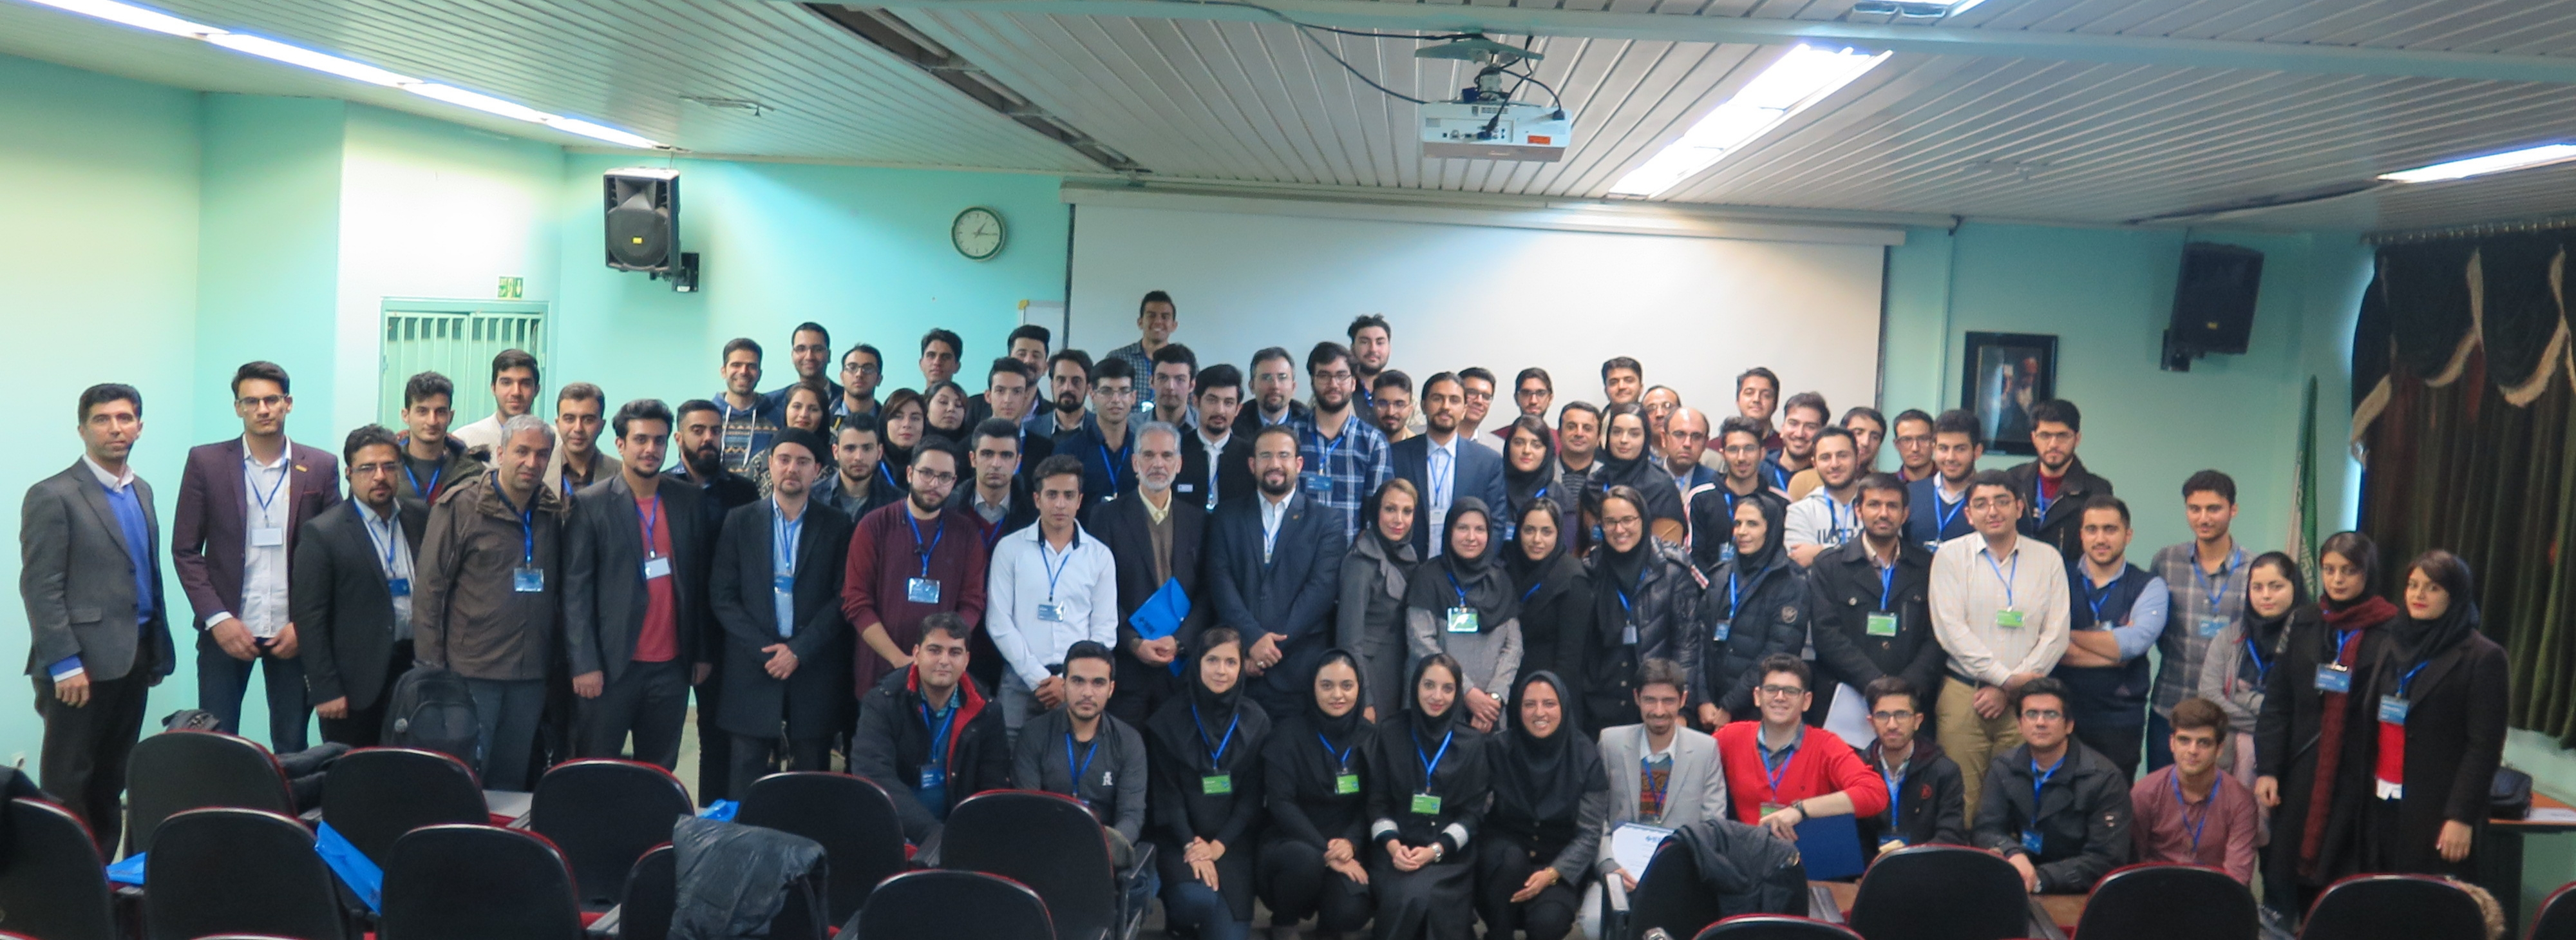 The 15th Counselors Meeting and Executive Committee of IEEE Iran Section